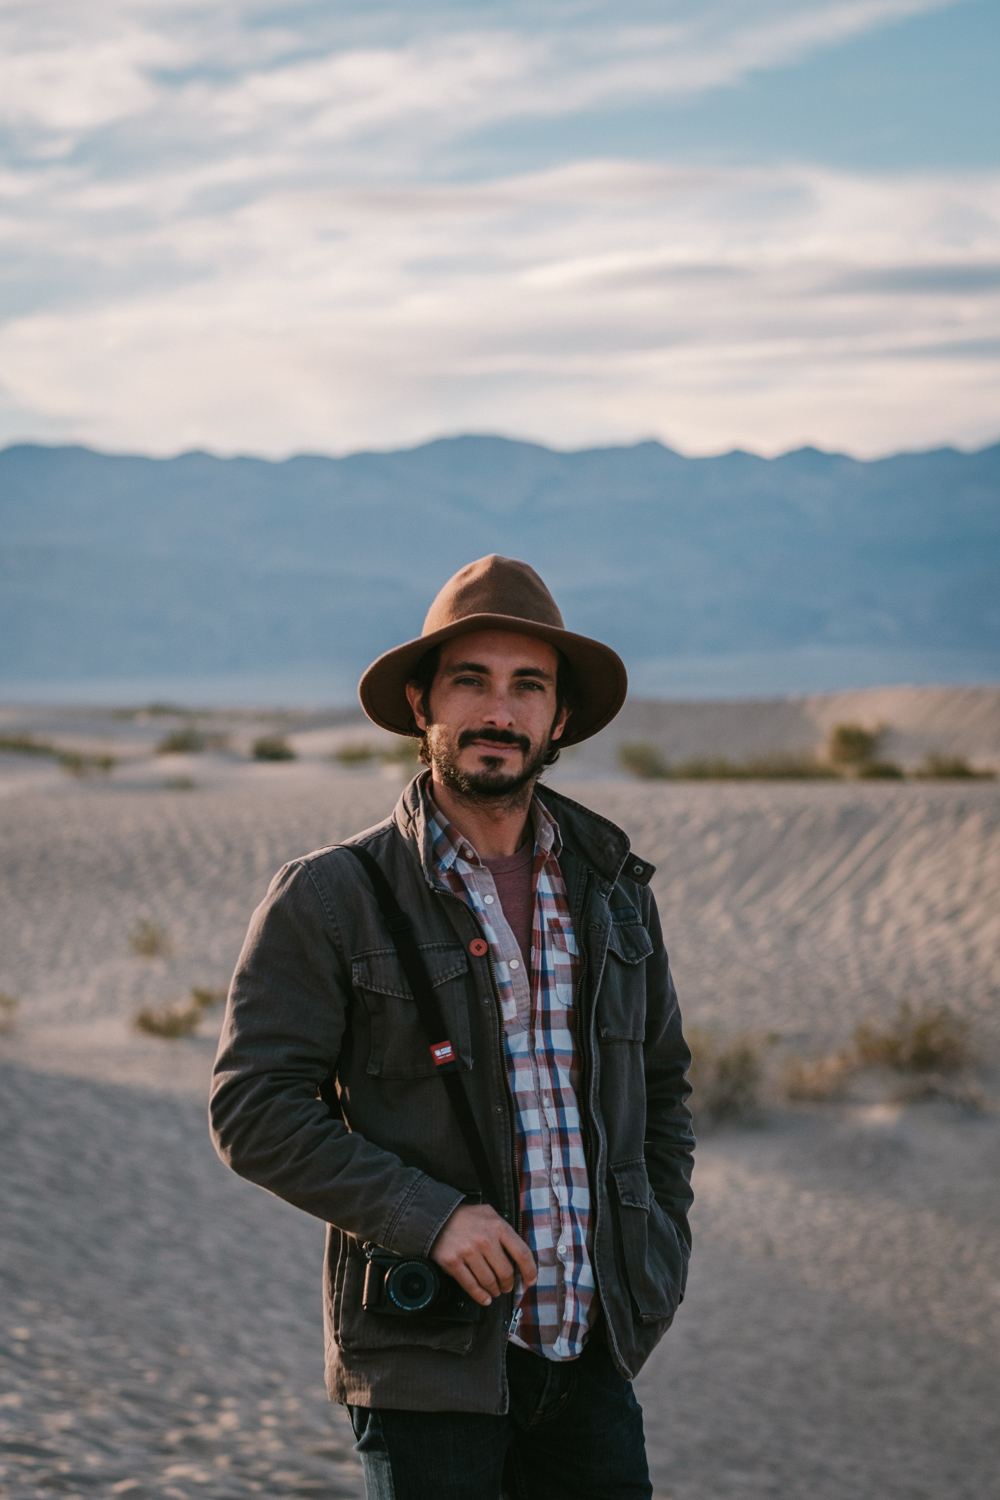 Portrait made by my beautiful wife during our time at Death Valley National Park, last December